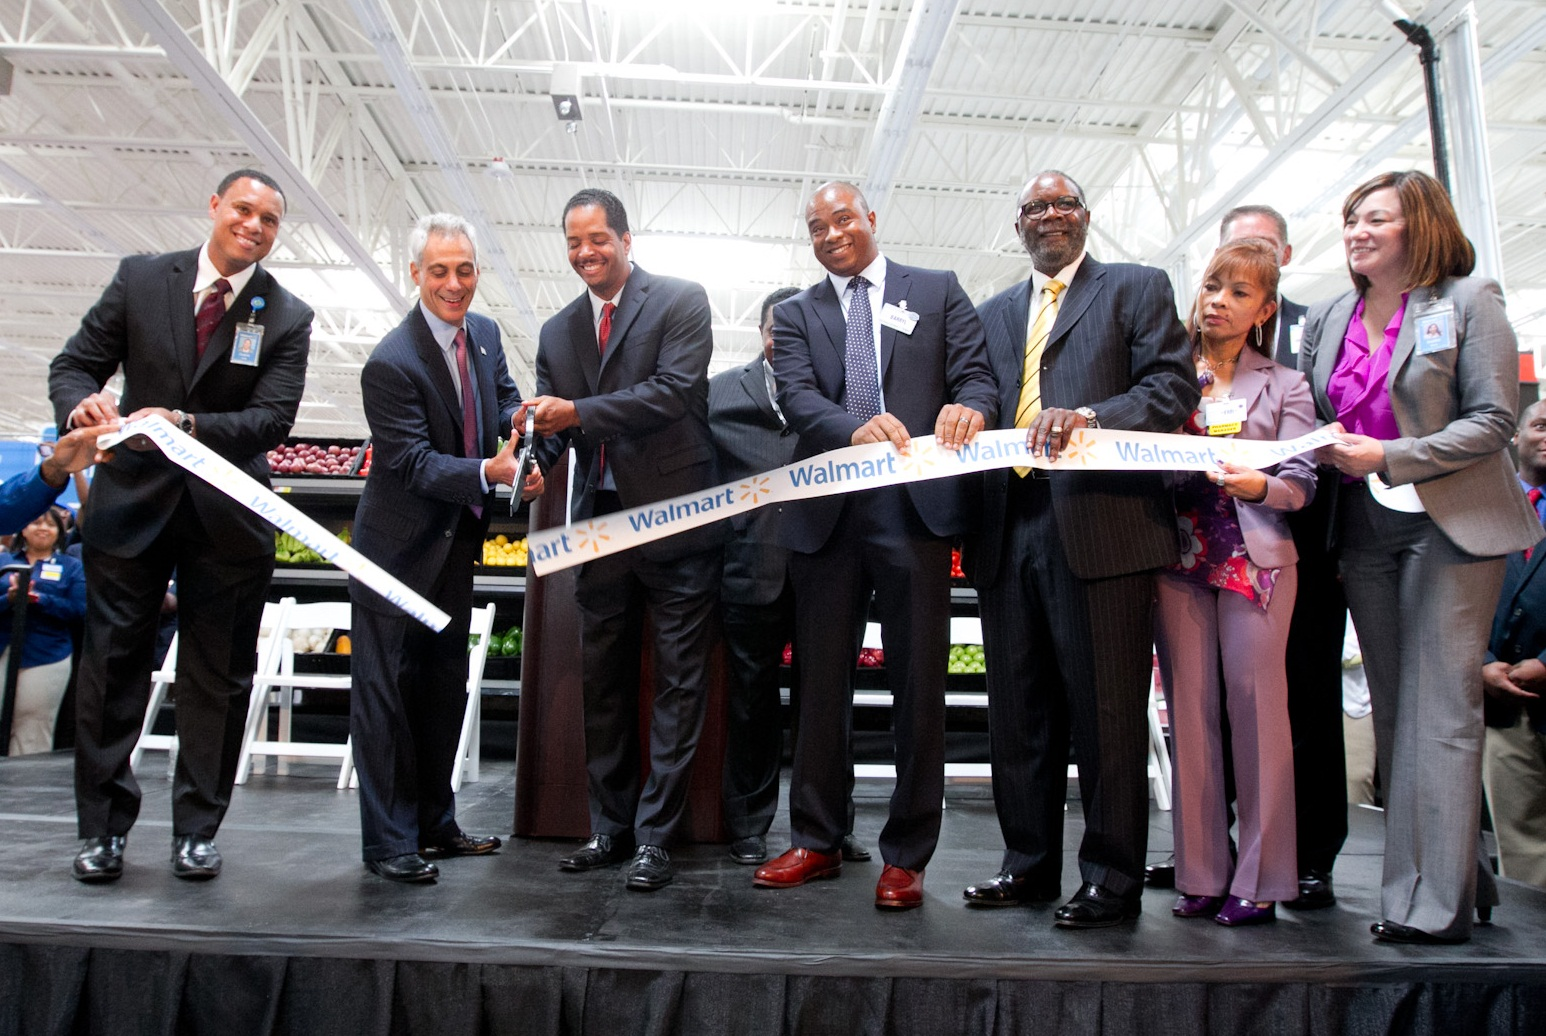 Mayor Emanuel joins Alderman Beale and community members at the grand opening of a new Walmart Supercenter in the Pullman neighborhood.